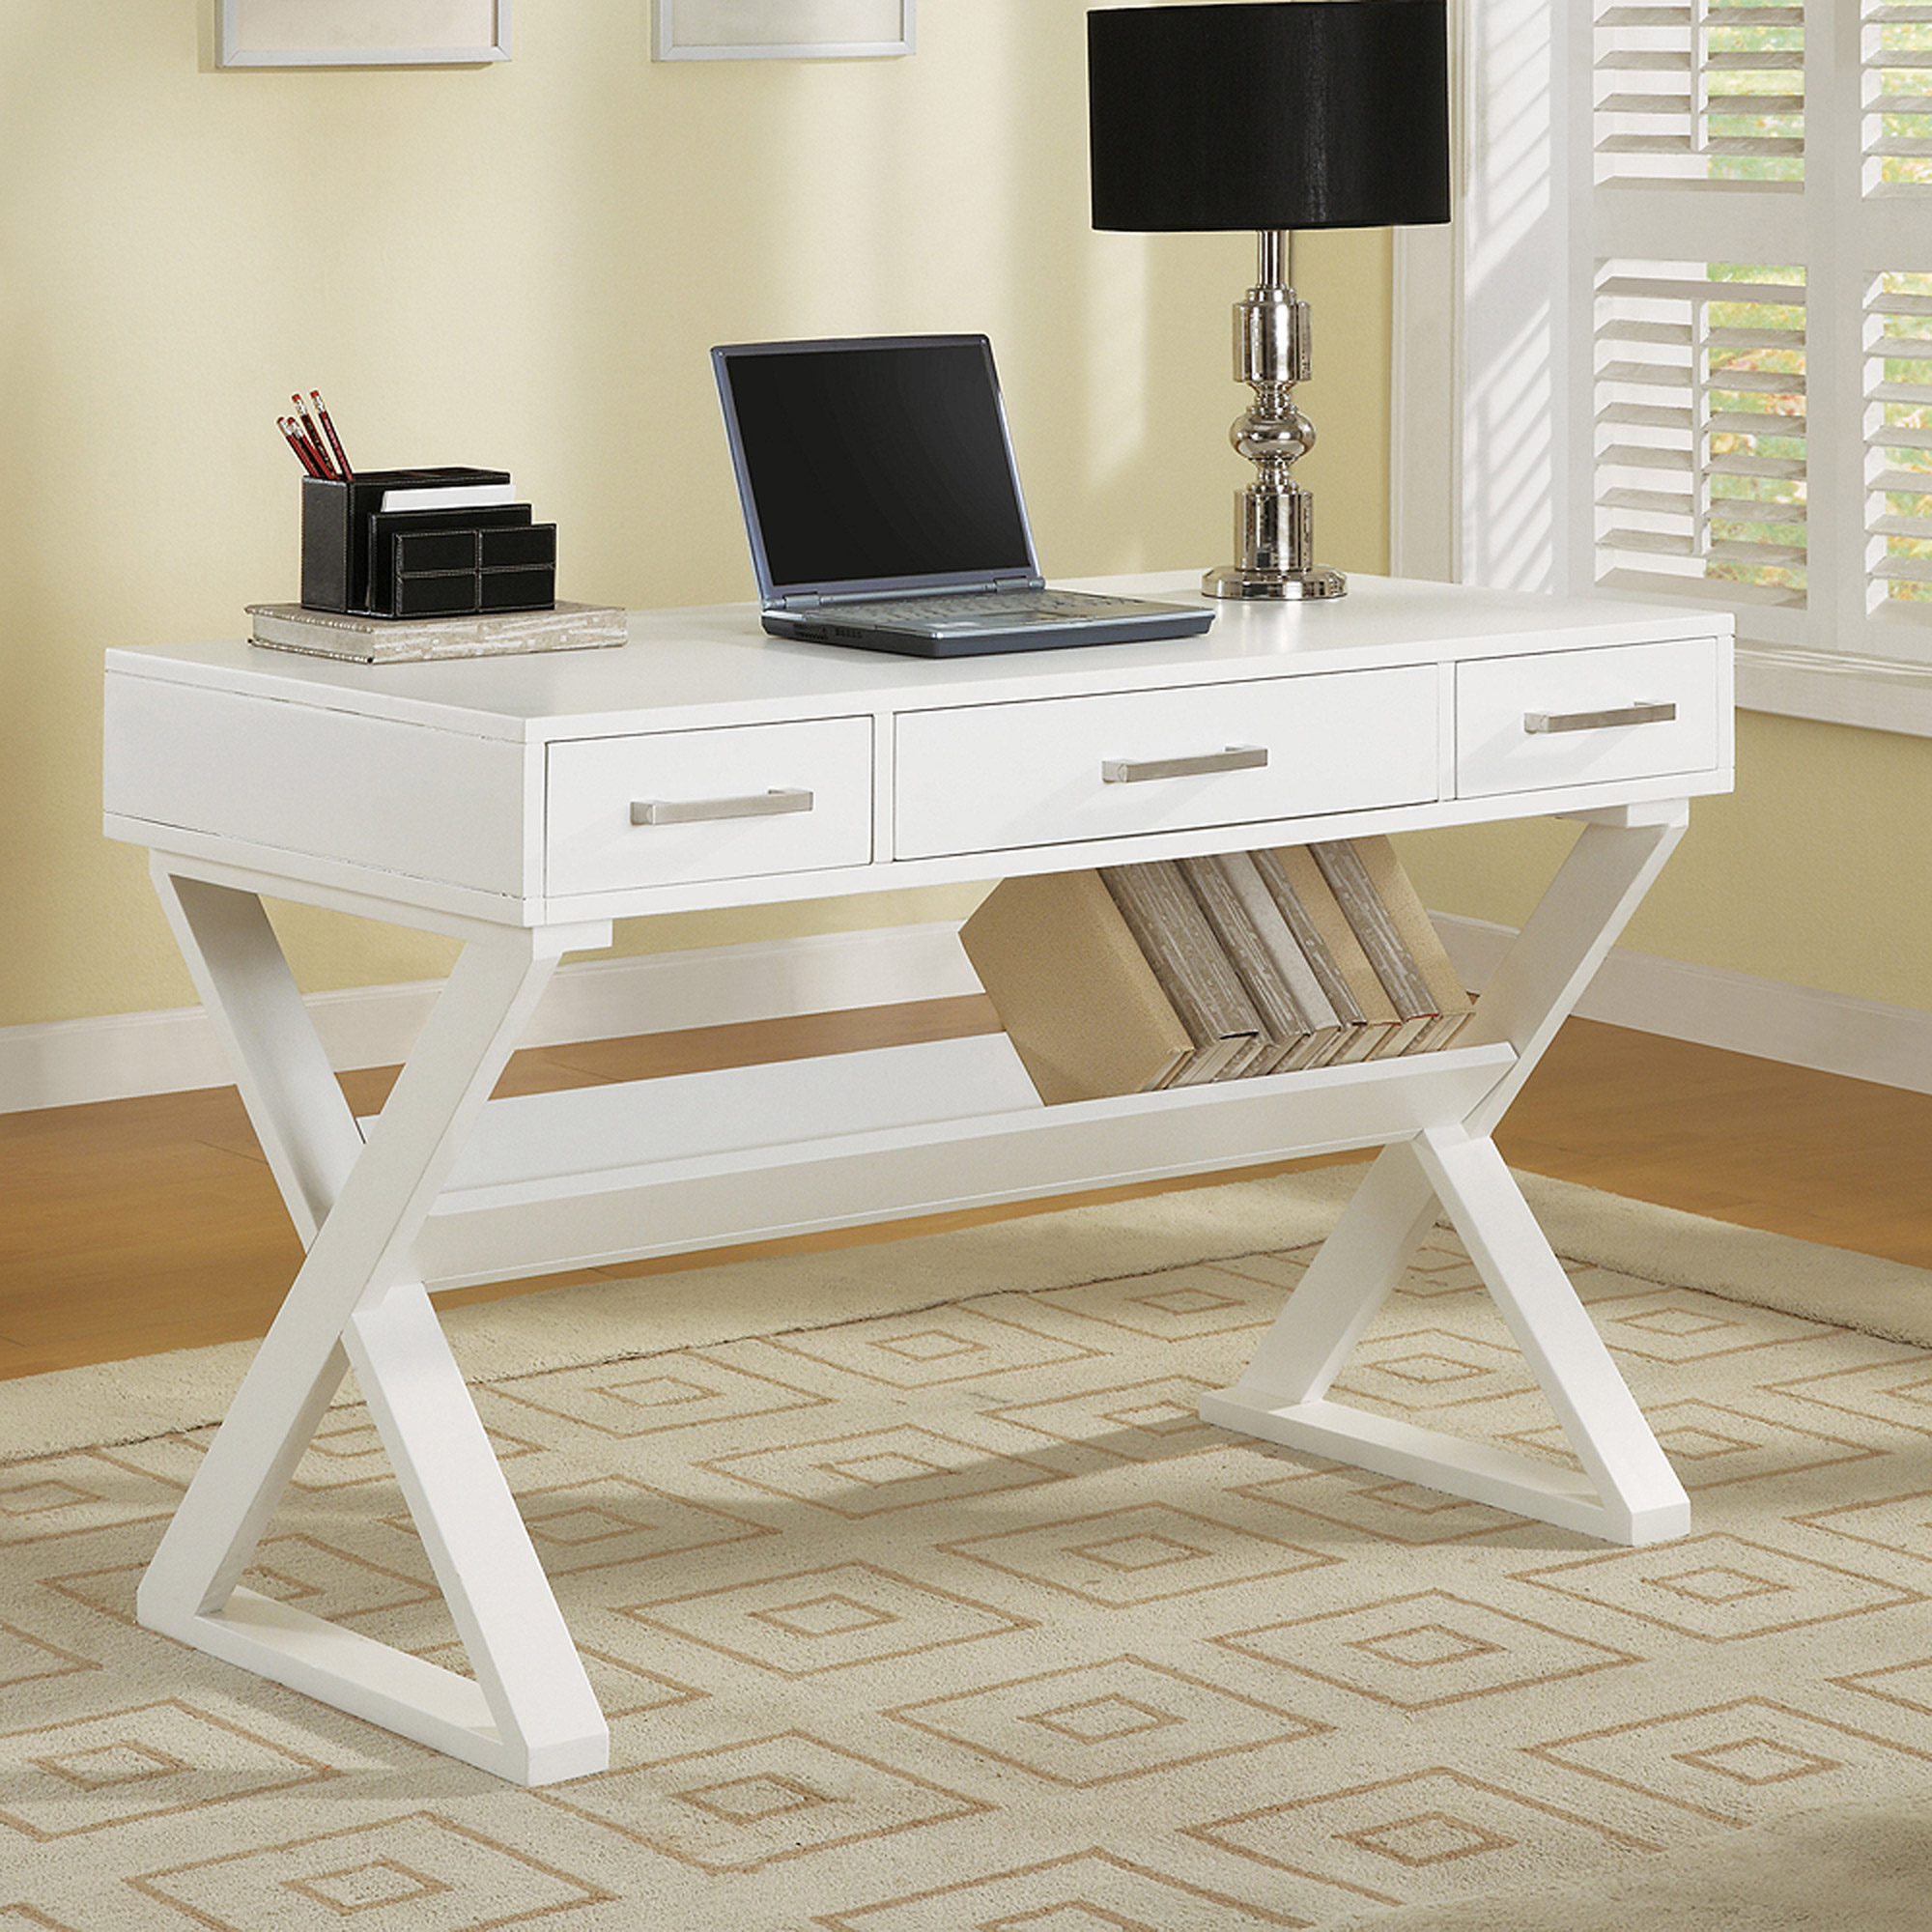 Coaster Company Contemporary Computer desk, White